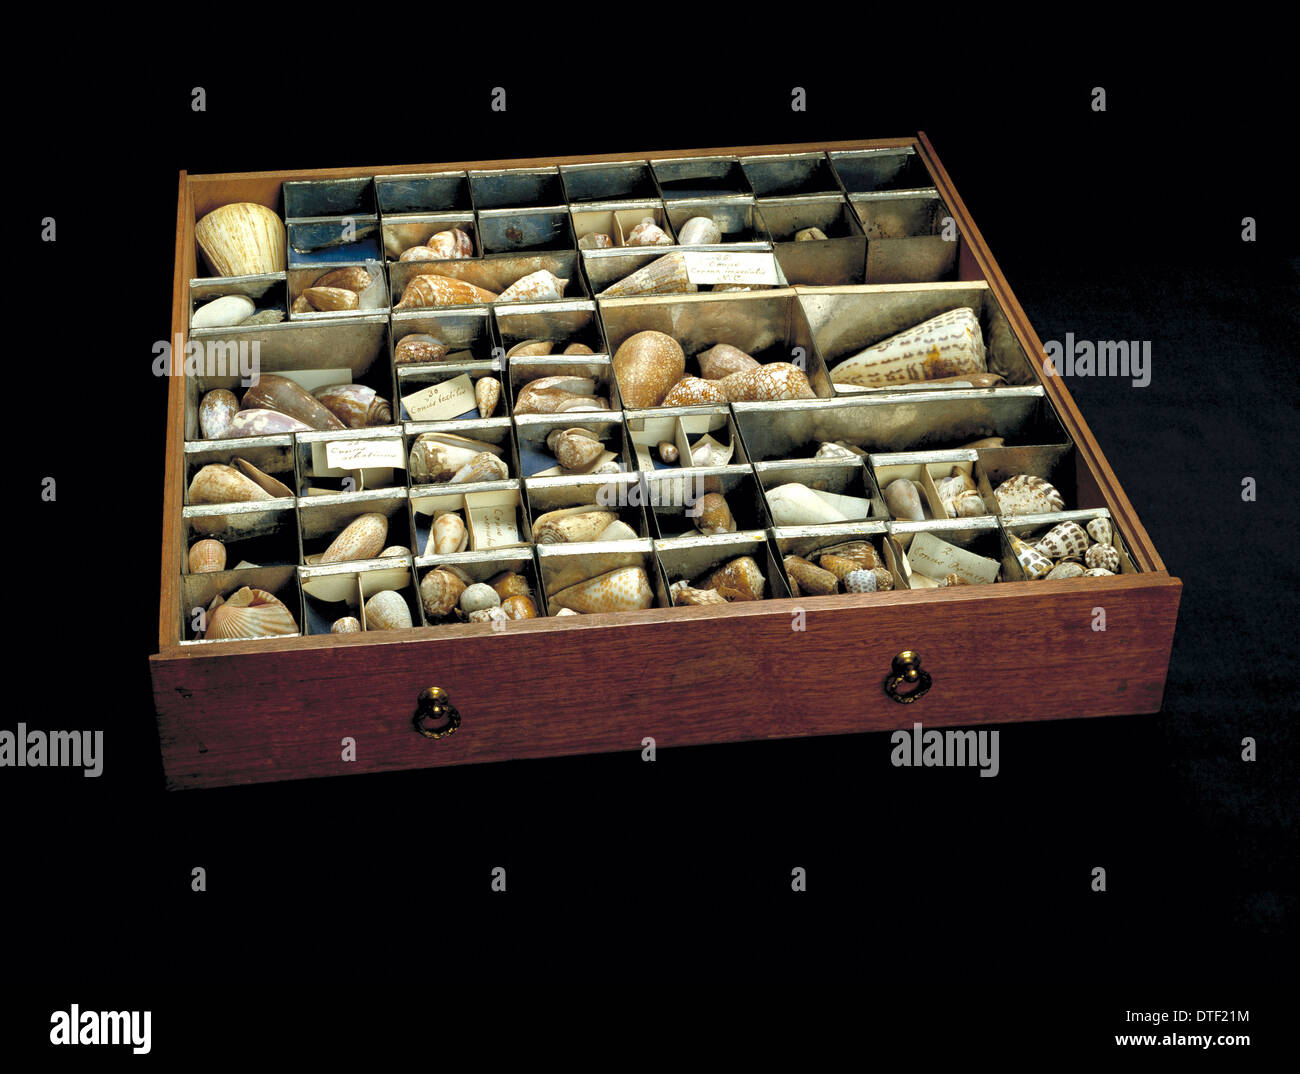 Shells from Sir Joseph Banks' collection - Stock Image